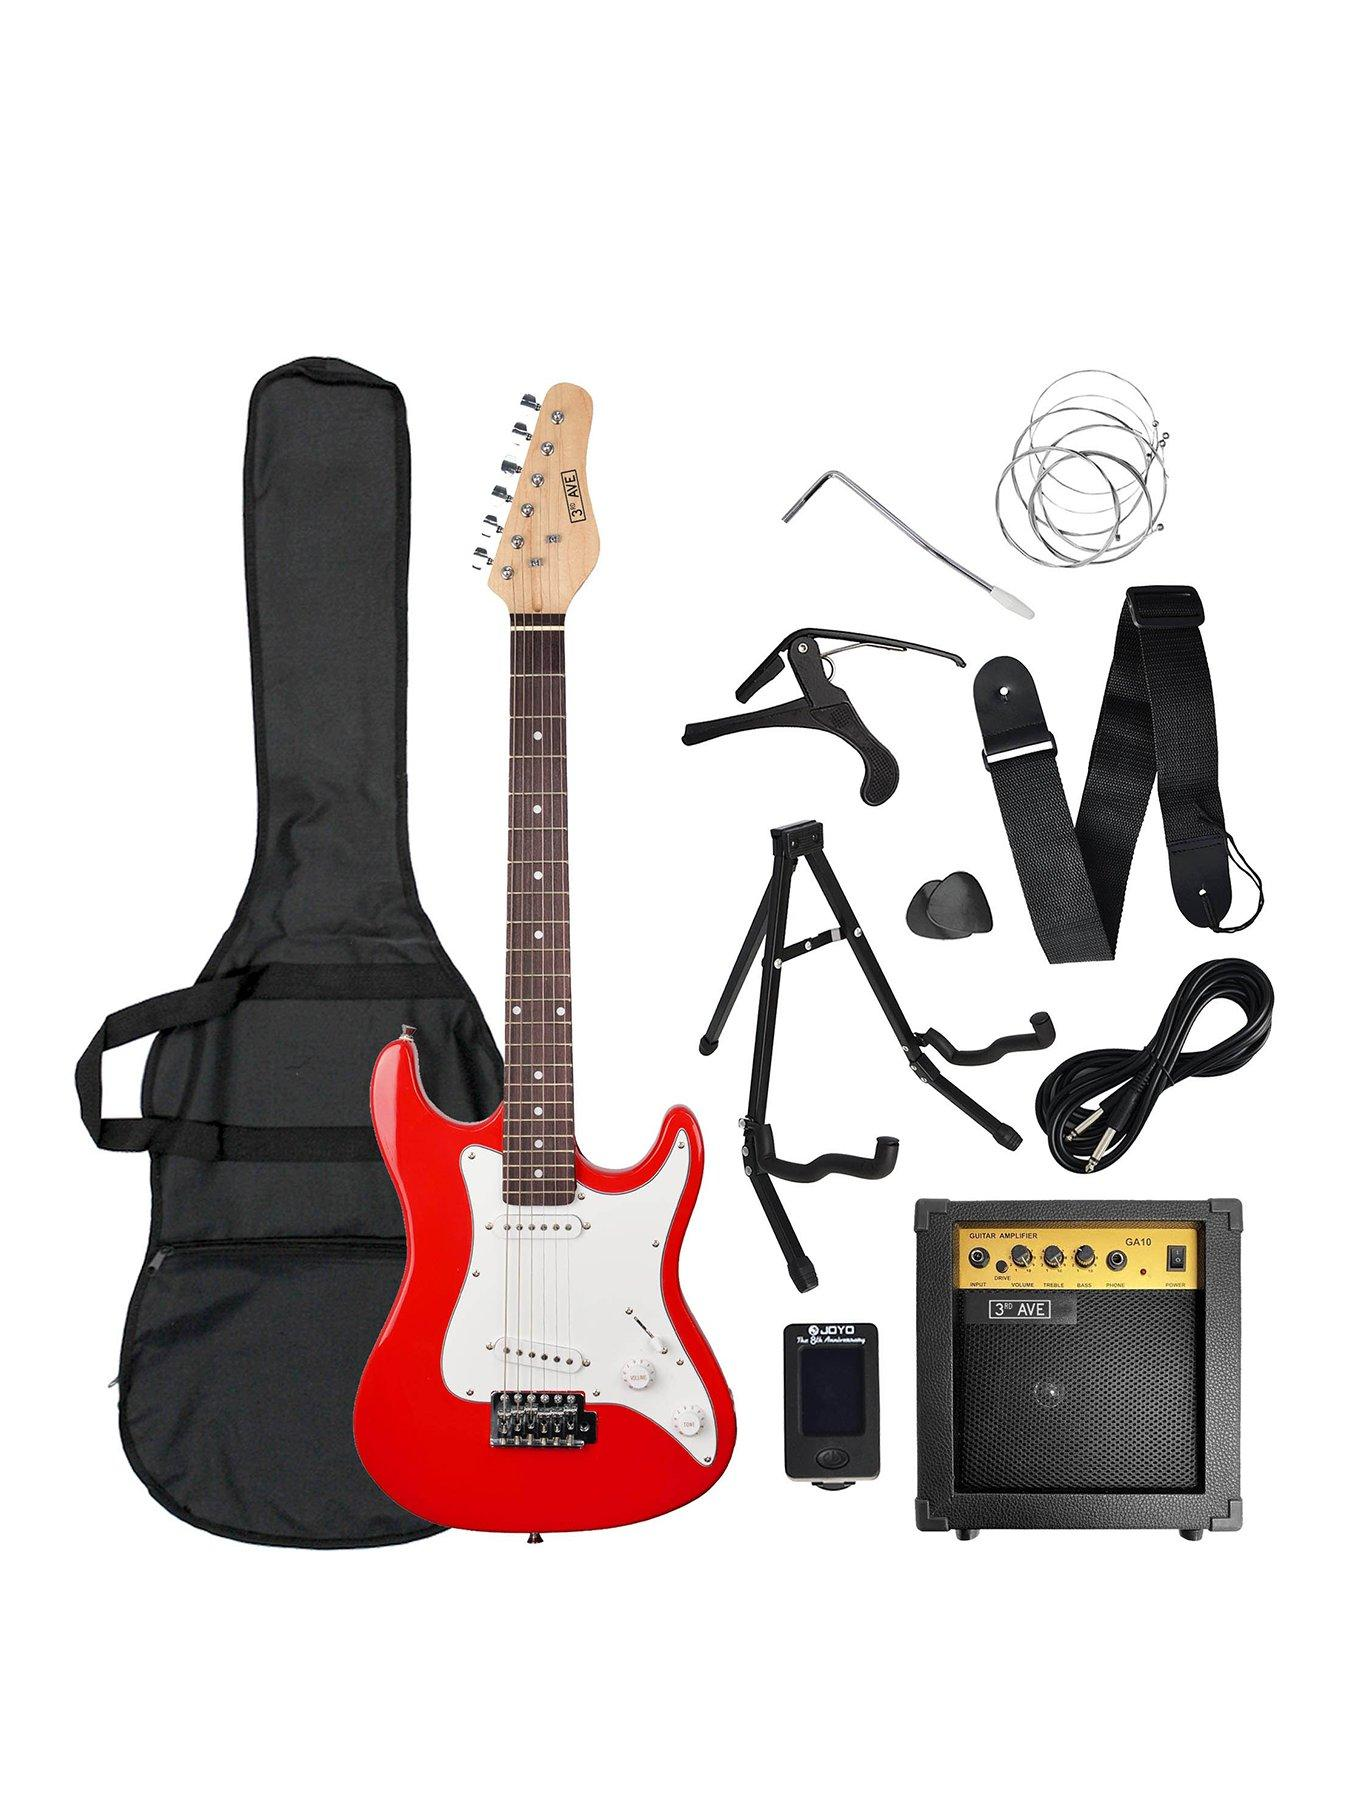 Music Collection 6 Instruments guitar sax horn mic music boombox NEW LEGO